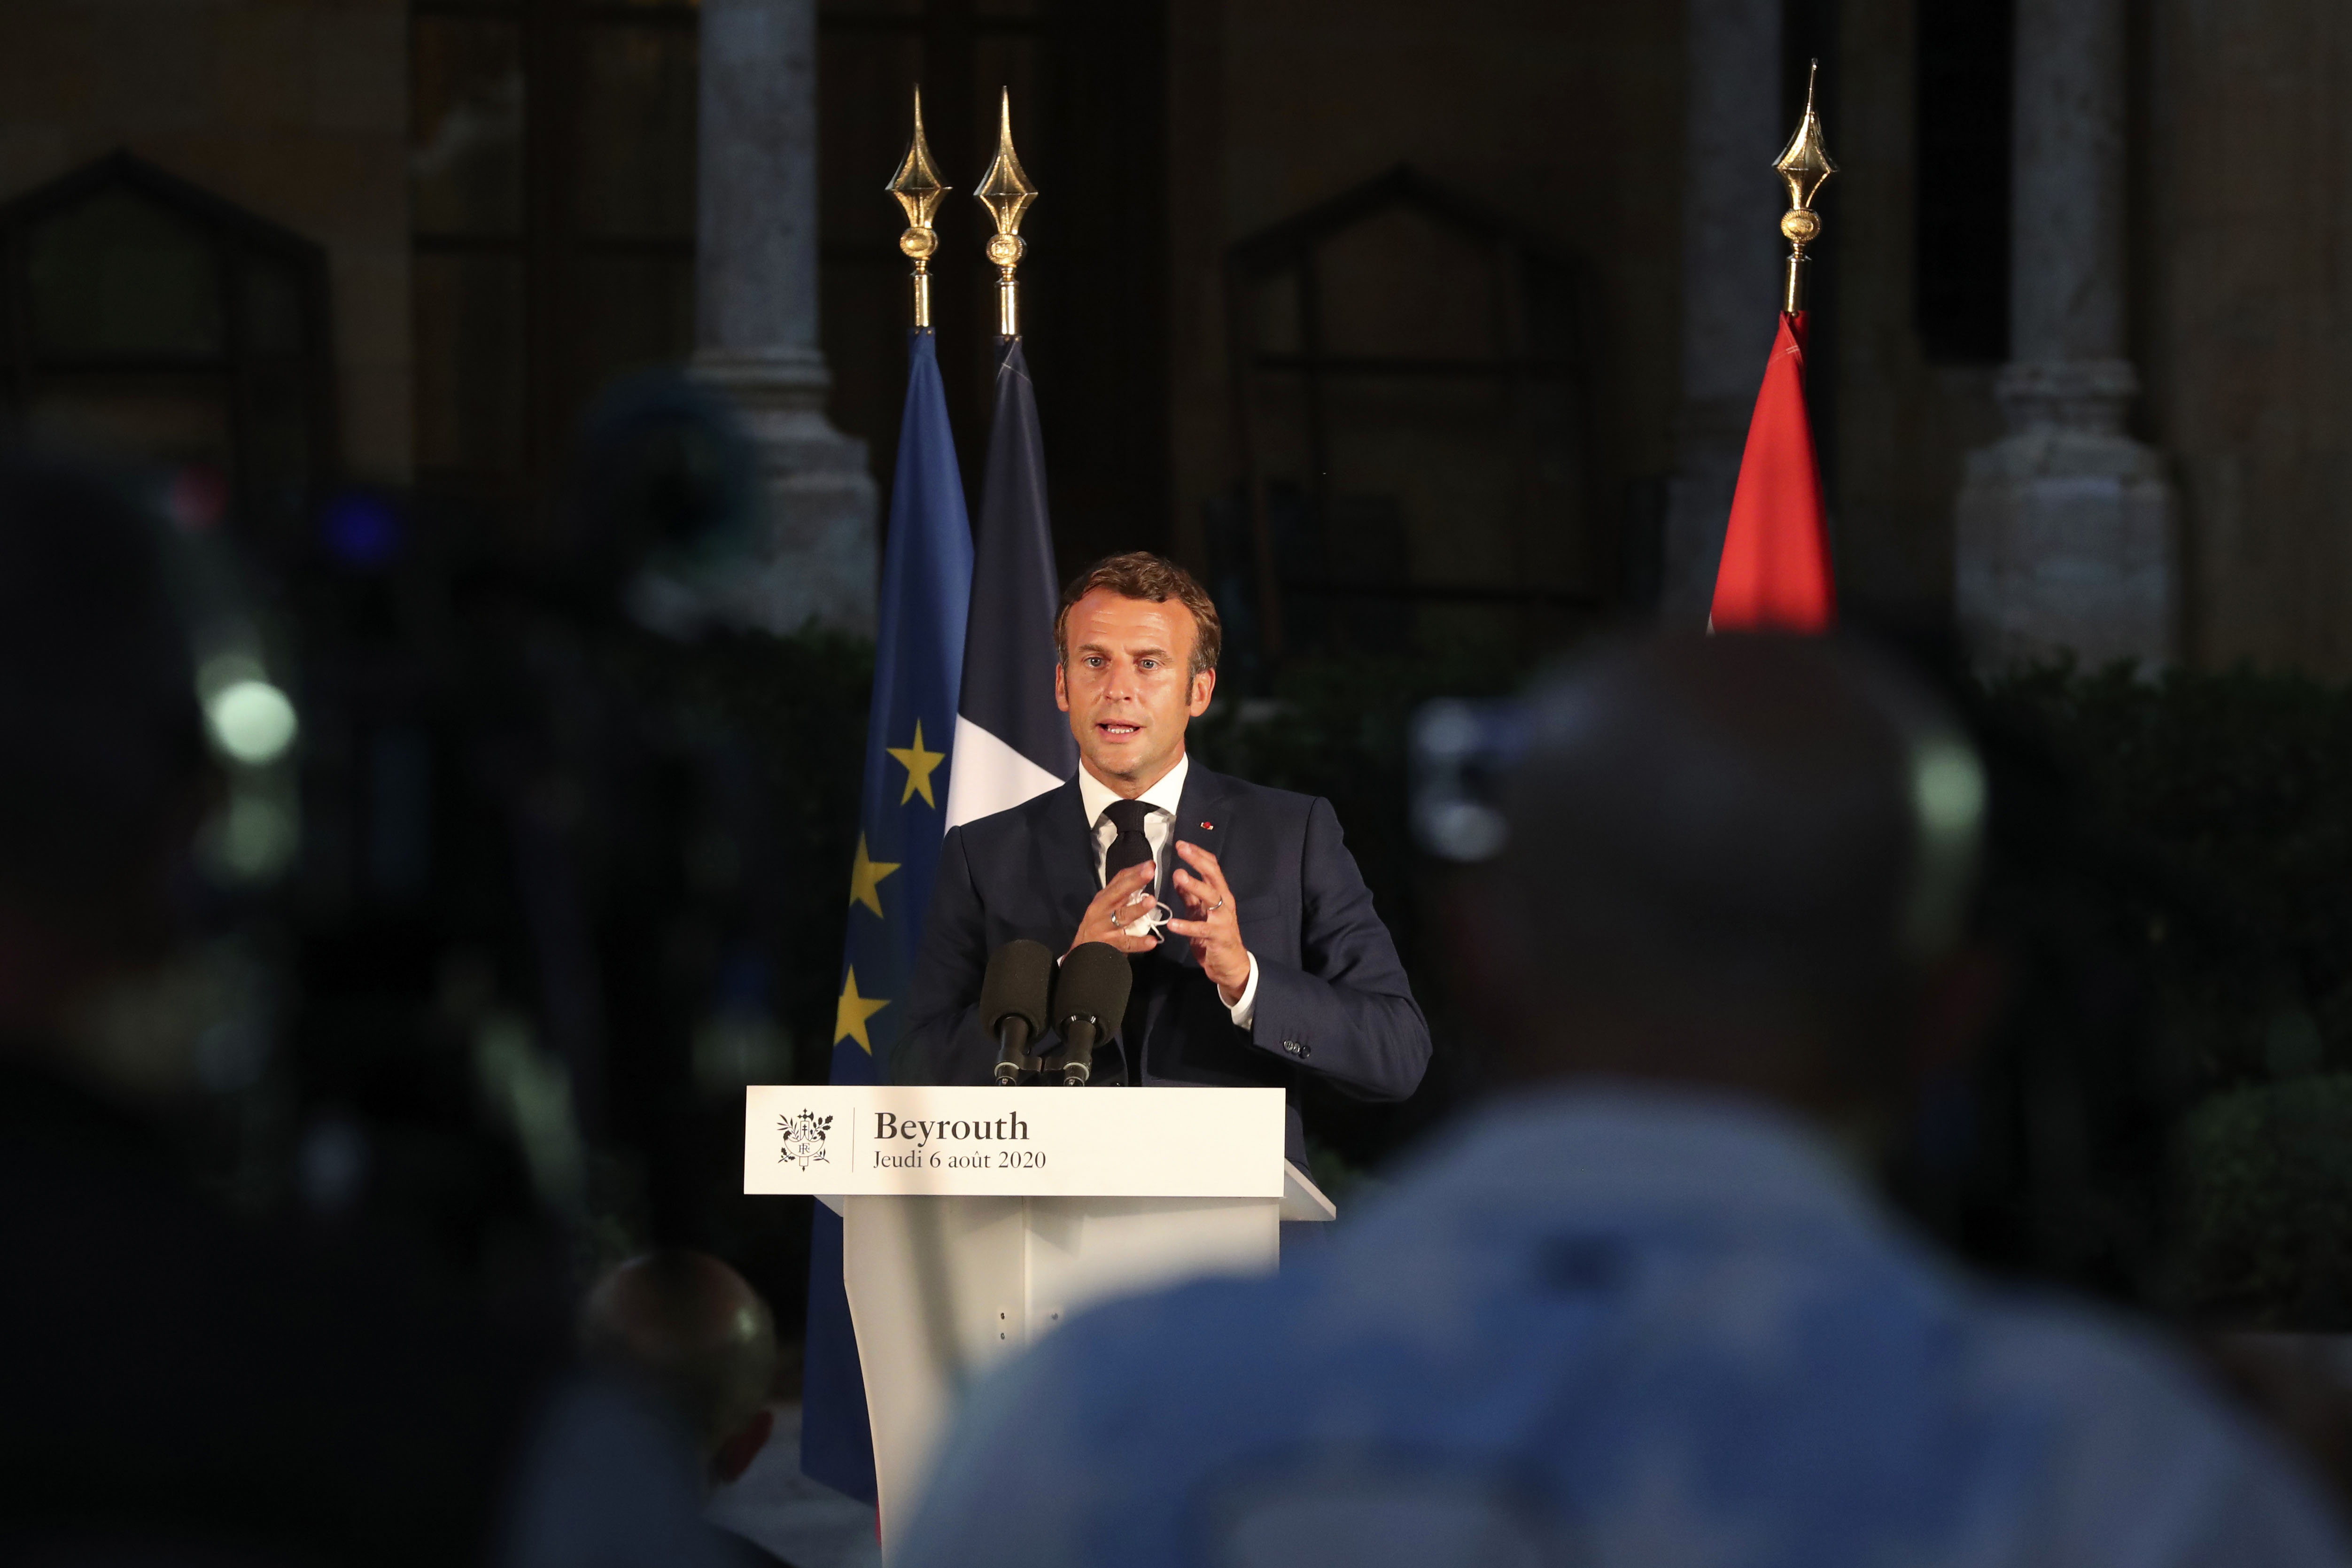 French President Emmanuel Macron speaks at a press conference in Beirut, Lebanon, on August 6.